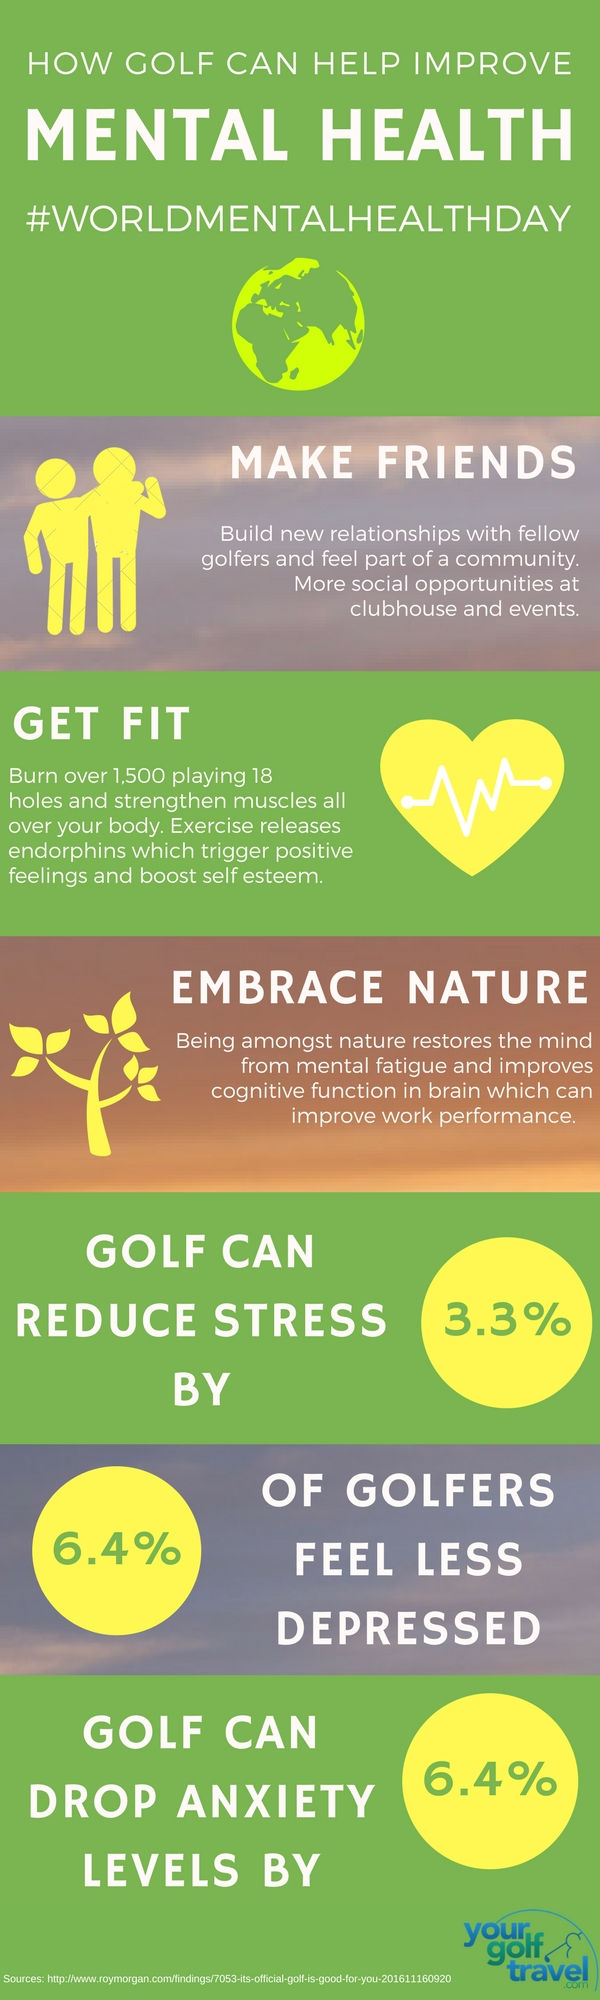 How Golf can help improve